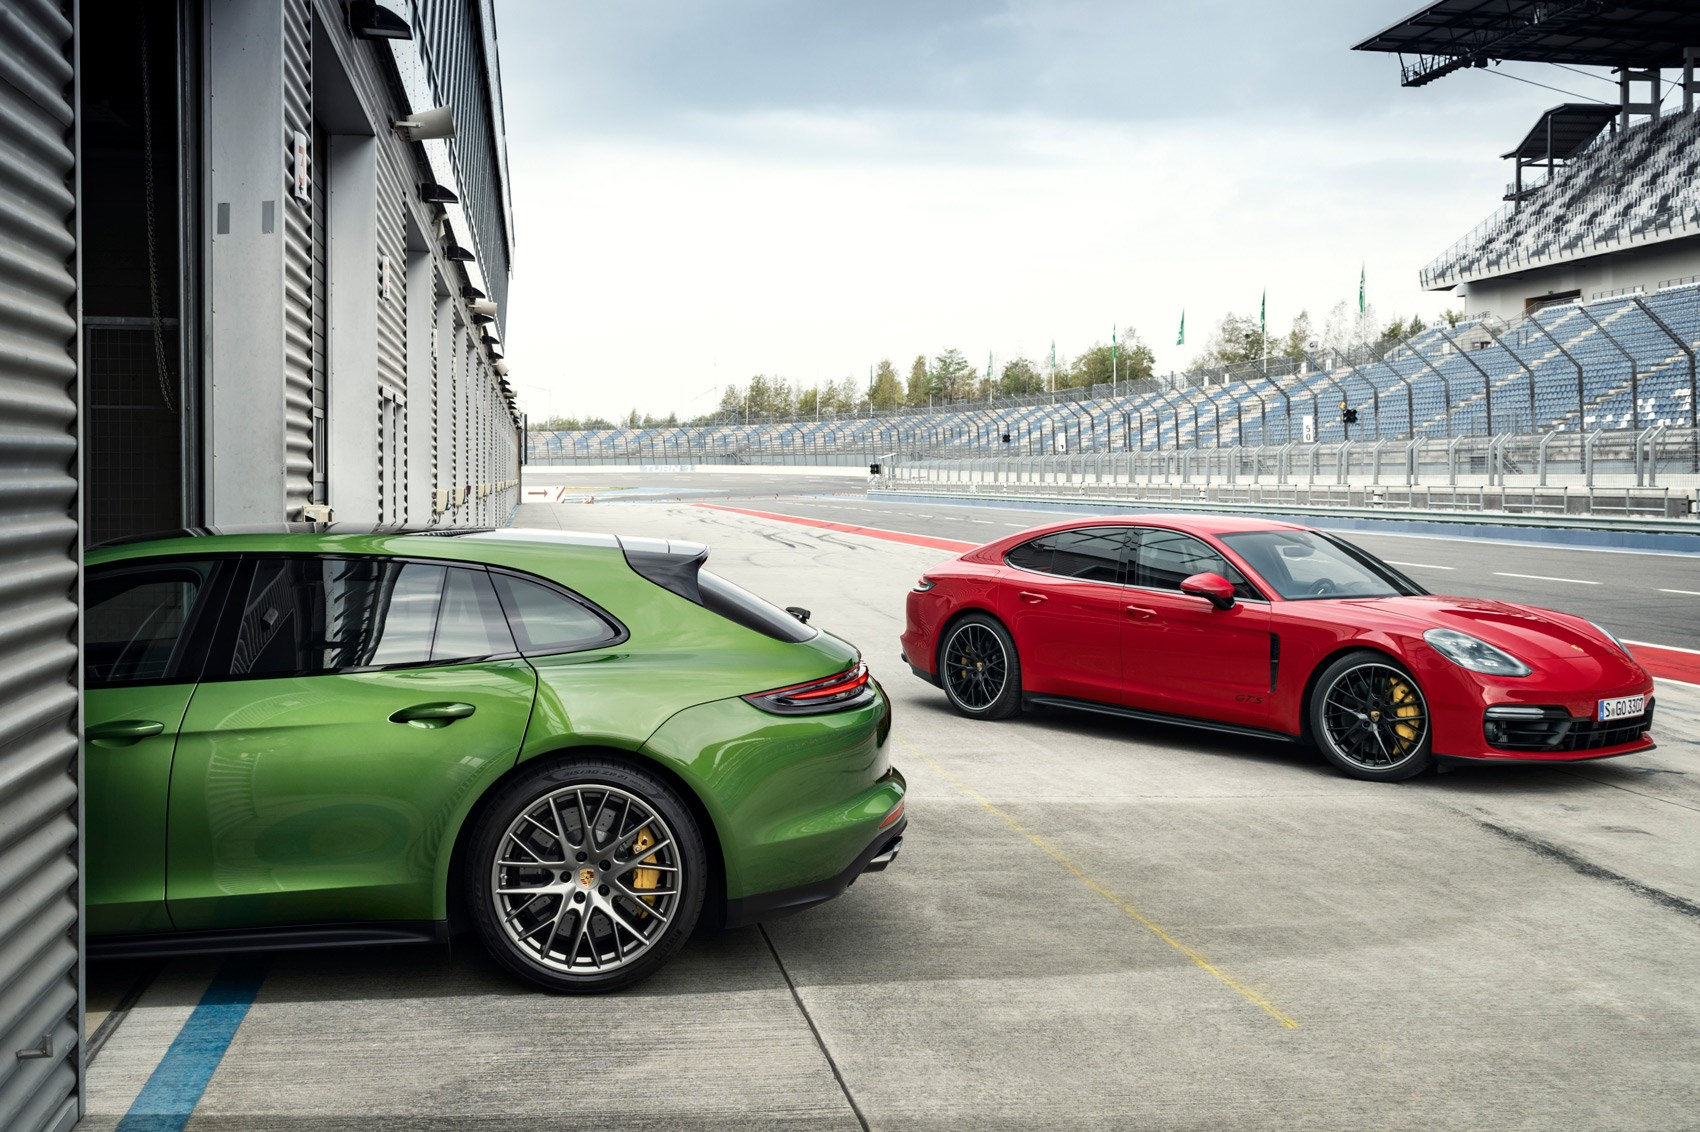 Panamera Gts 2018 >> Rangee 2013 The Hybrid Electric Range Rover Sport Car Magazine